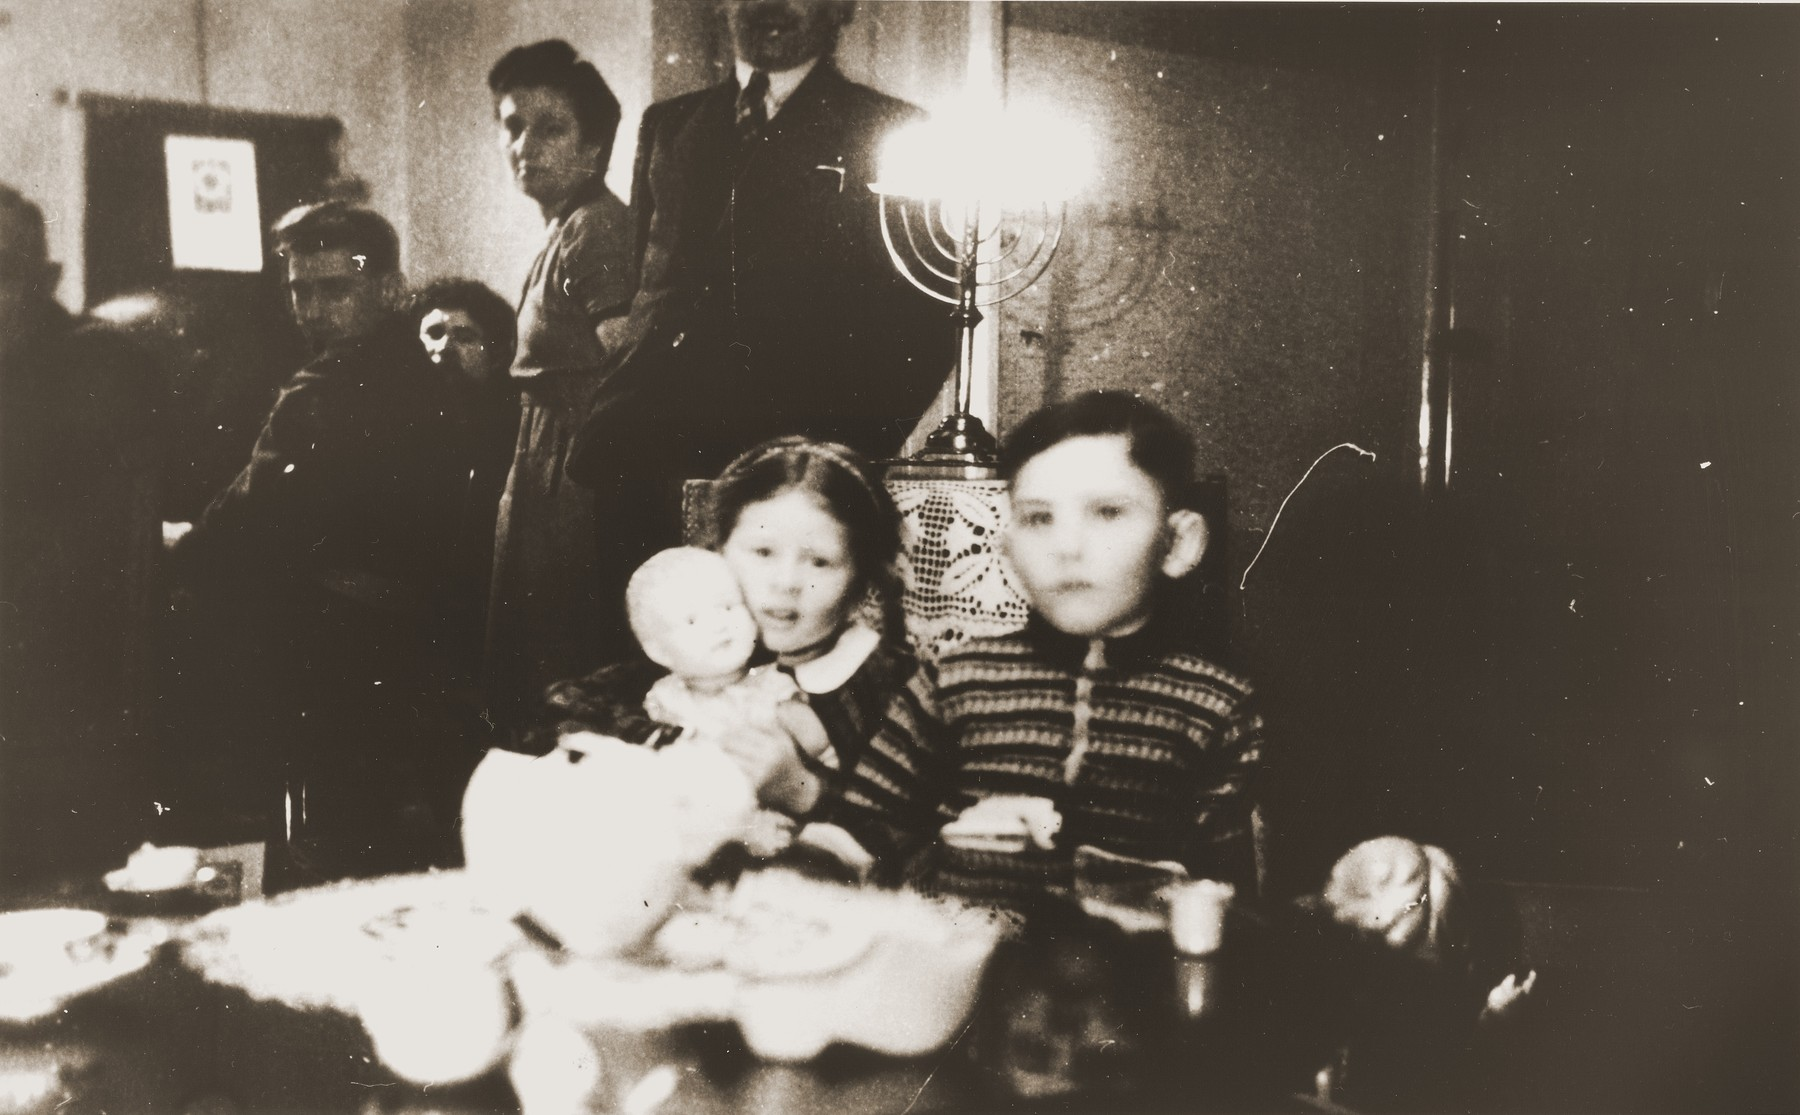 Two young Jewish children sit in front of a lighted Hanukkah menorah at the first postwar family Hanukkah celebration at the Zion home in Eibergen.  Pictured clutching her new doll is Betty Rosenbaum.  Betty, who was orphaned during the war, was adopted by her uncle Julius Zion after his marriage in 1946.